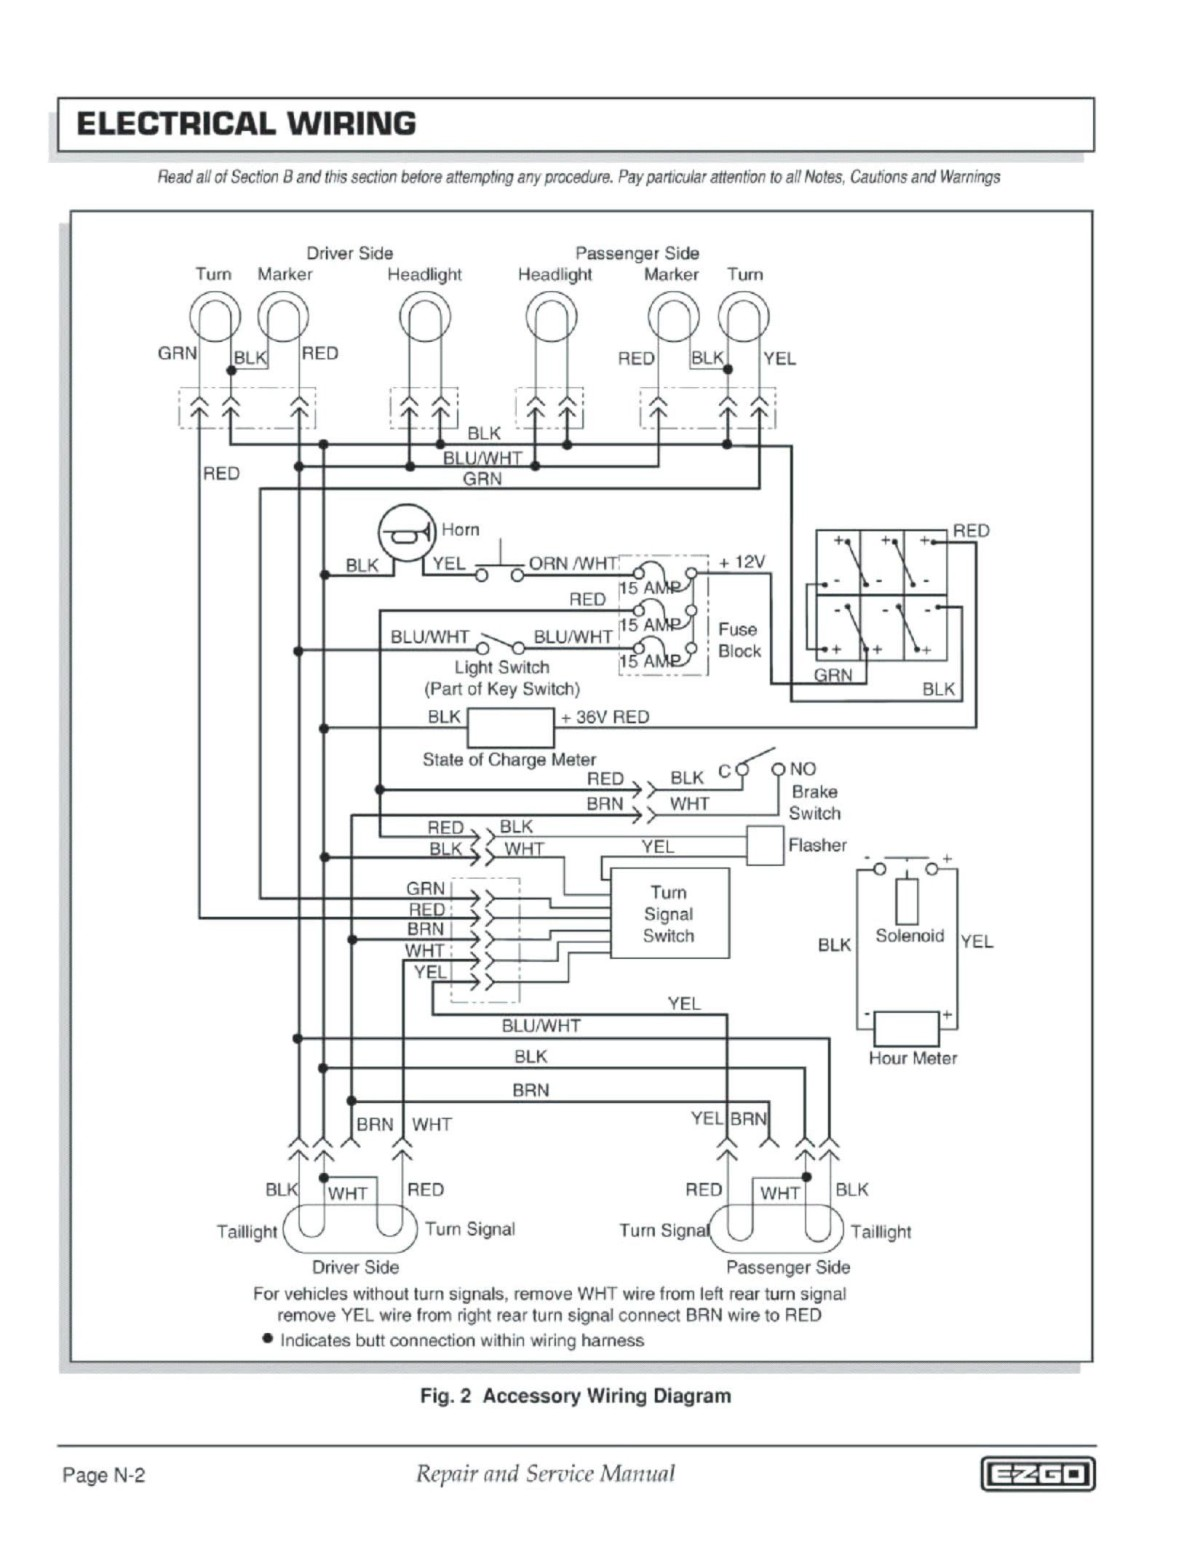 4 Wire Trailer Connector Wiring Diagram